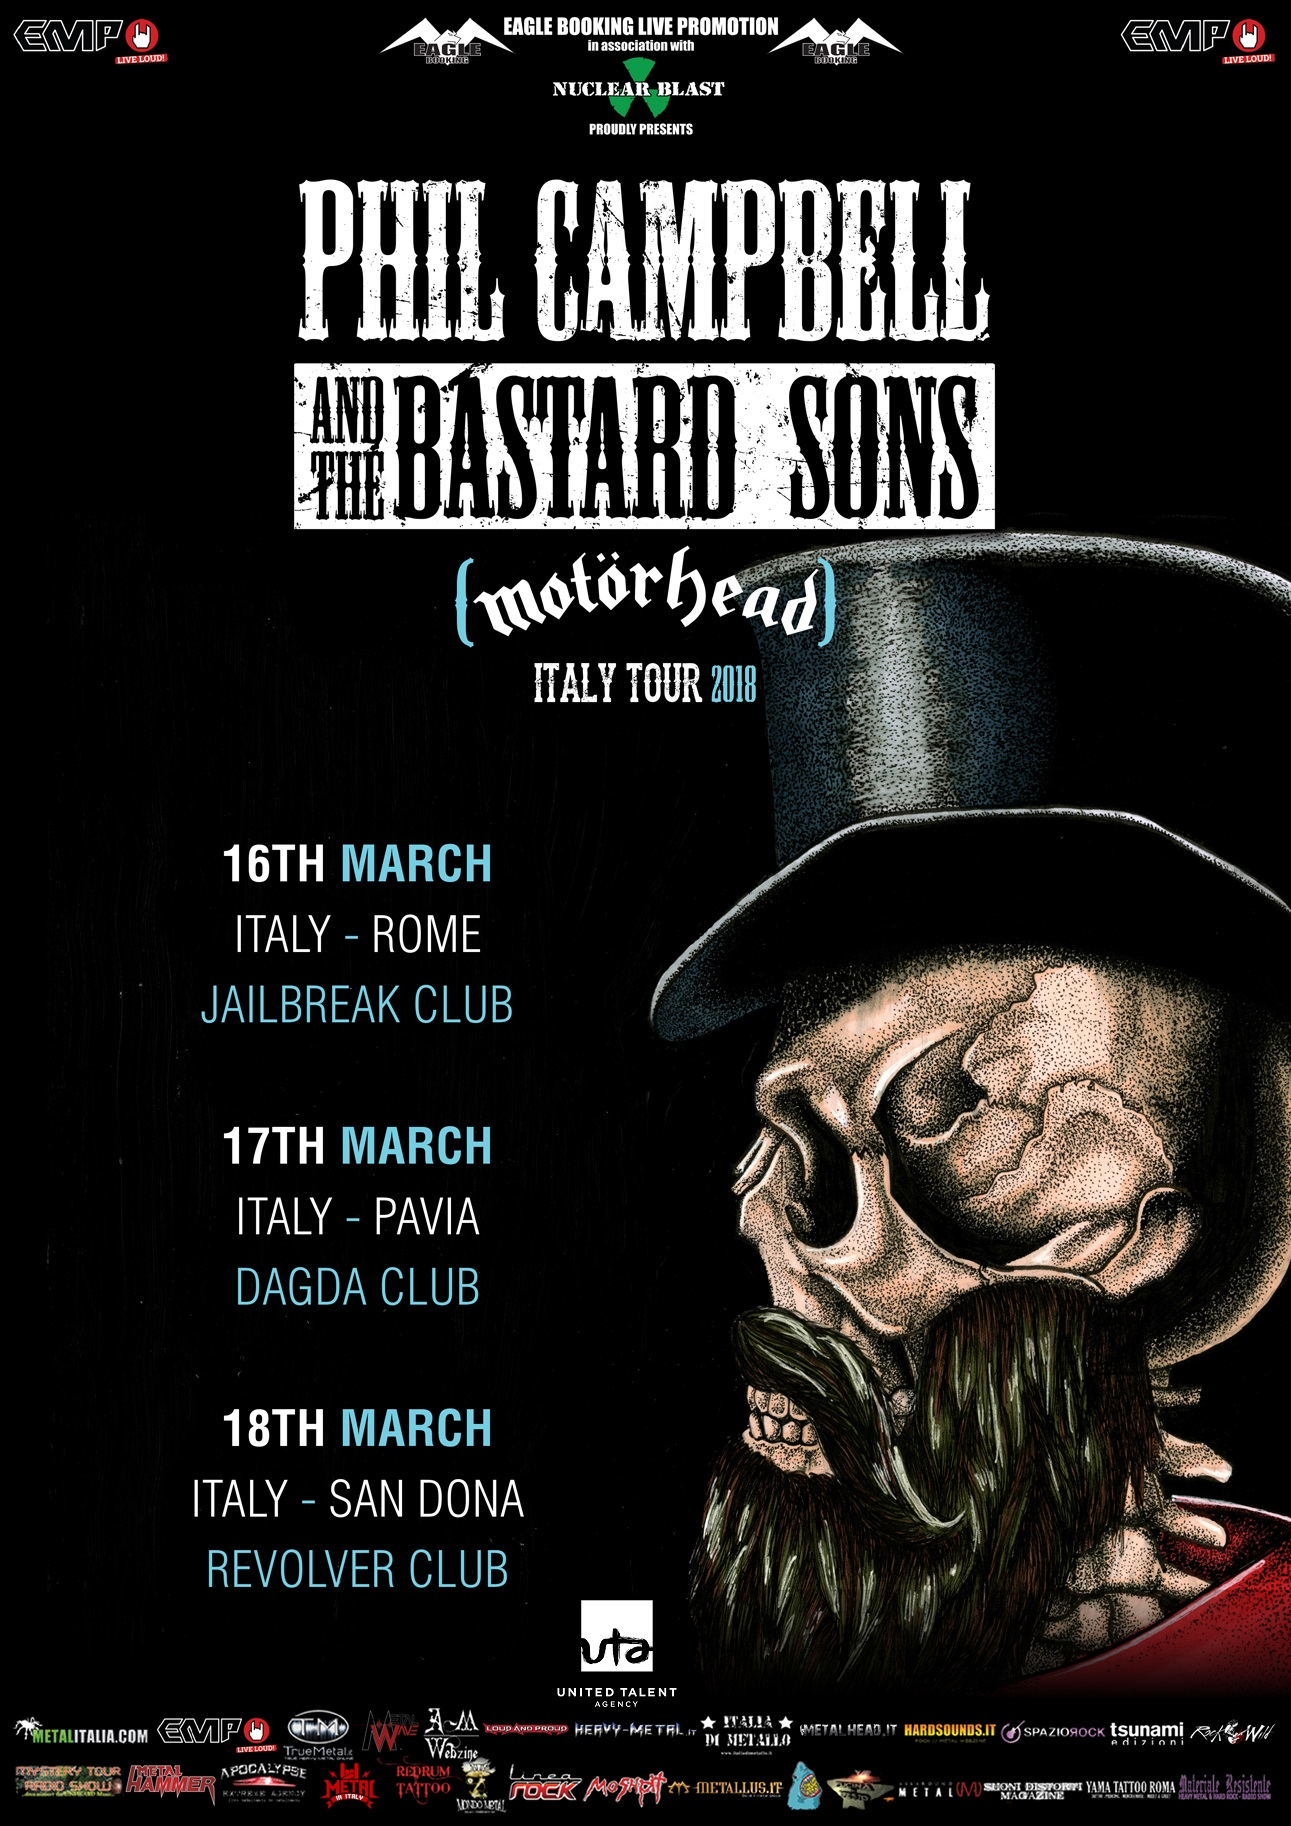 Phil Campbell And The Bastard Sons - Italy Tour 2018 - Promo